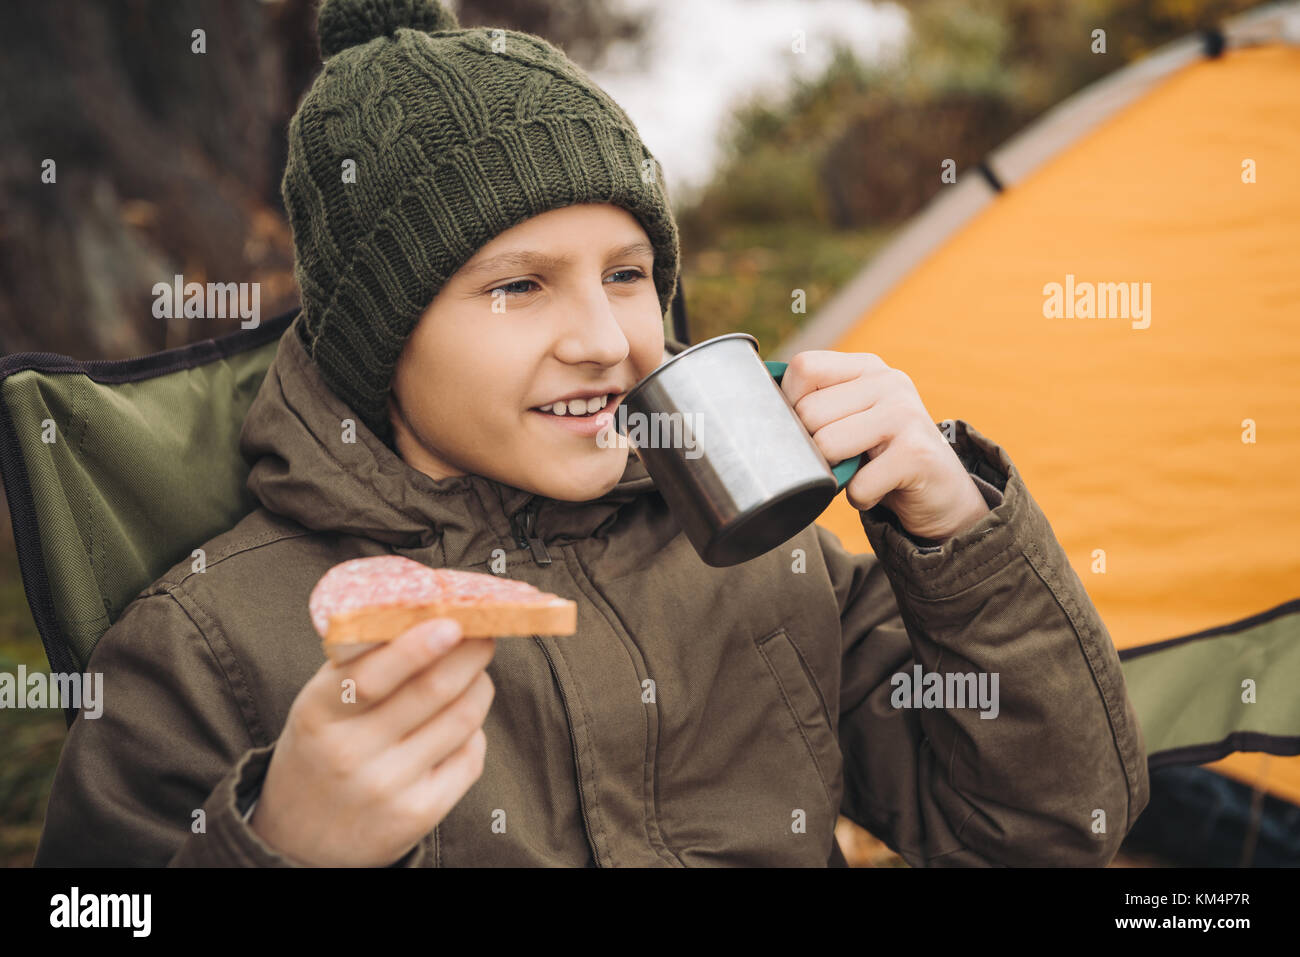 boy drinking tea and eating sandwich - Stock Image